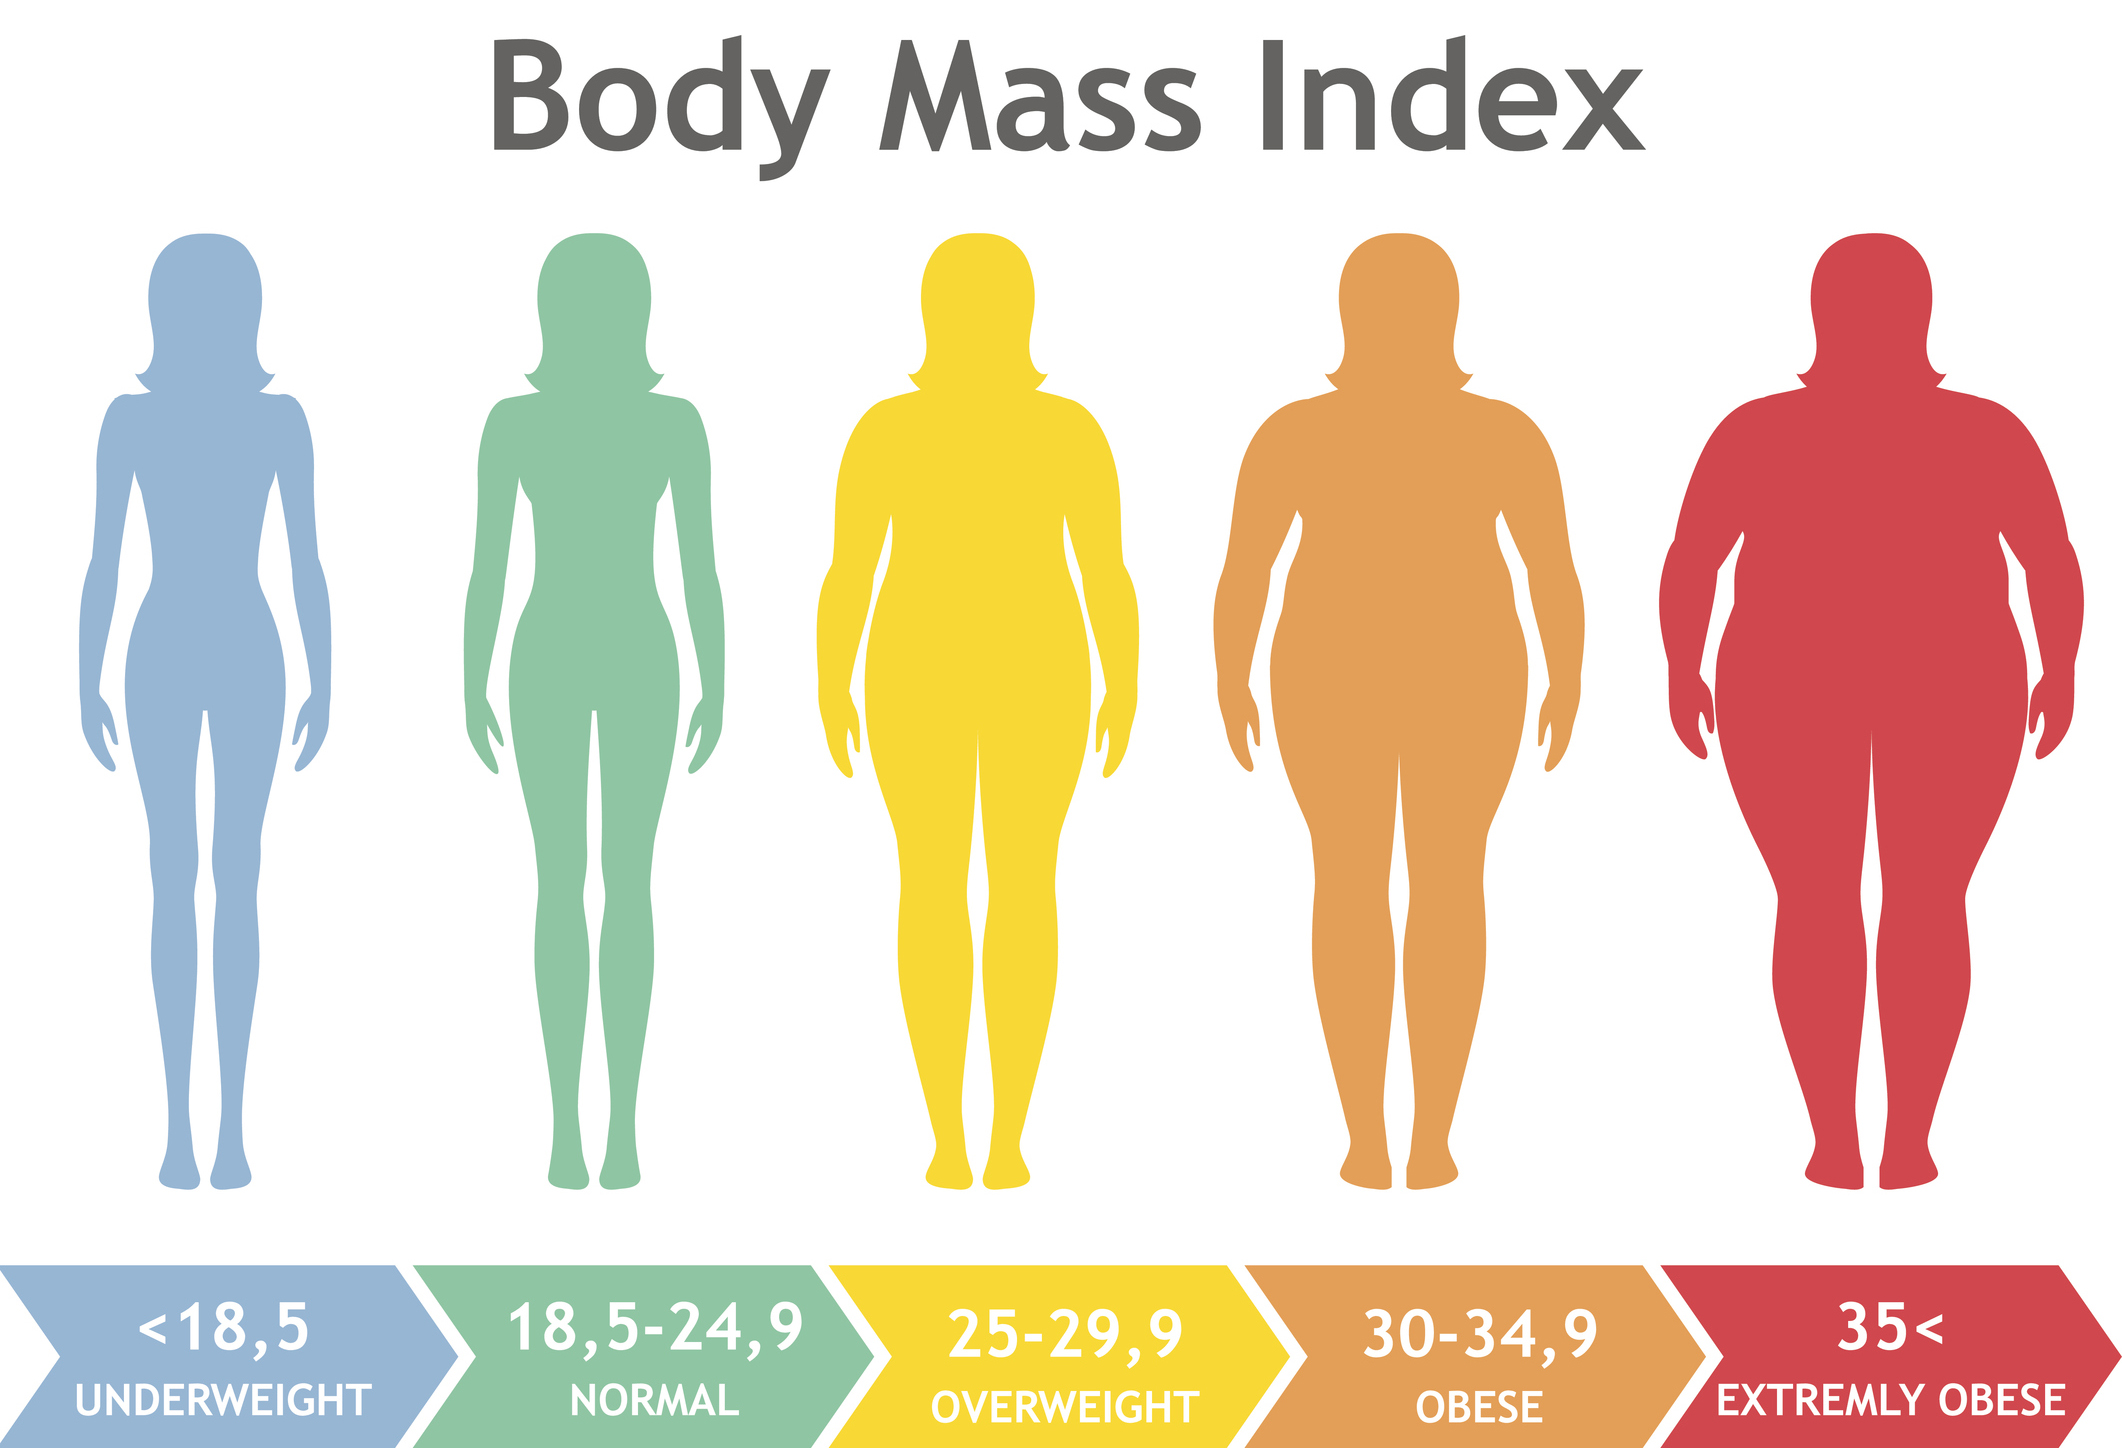 Body mass index vector illustration from underweight to extremely obese. Woman silhouettes with different obesity degrees. Female body with different weight.